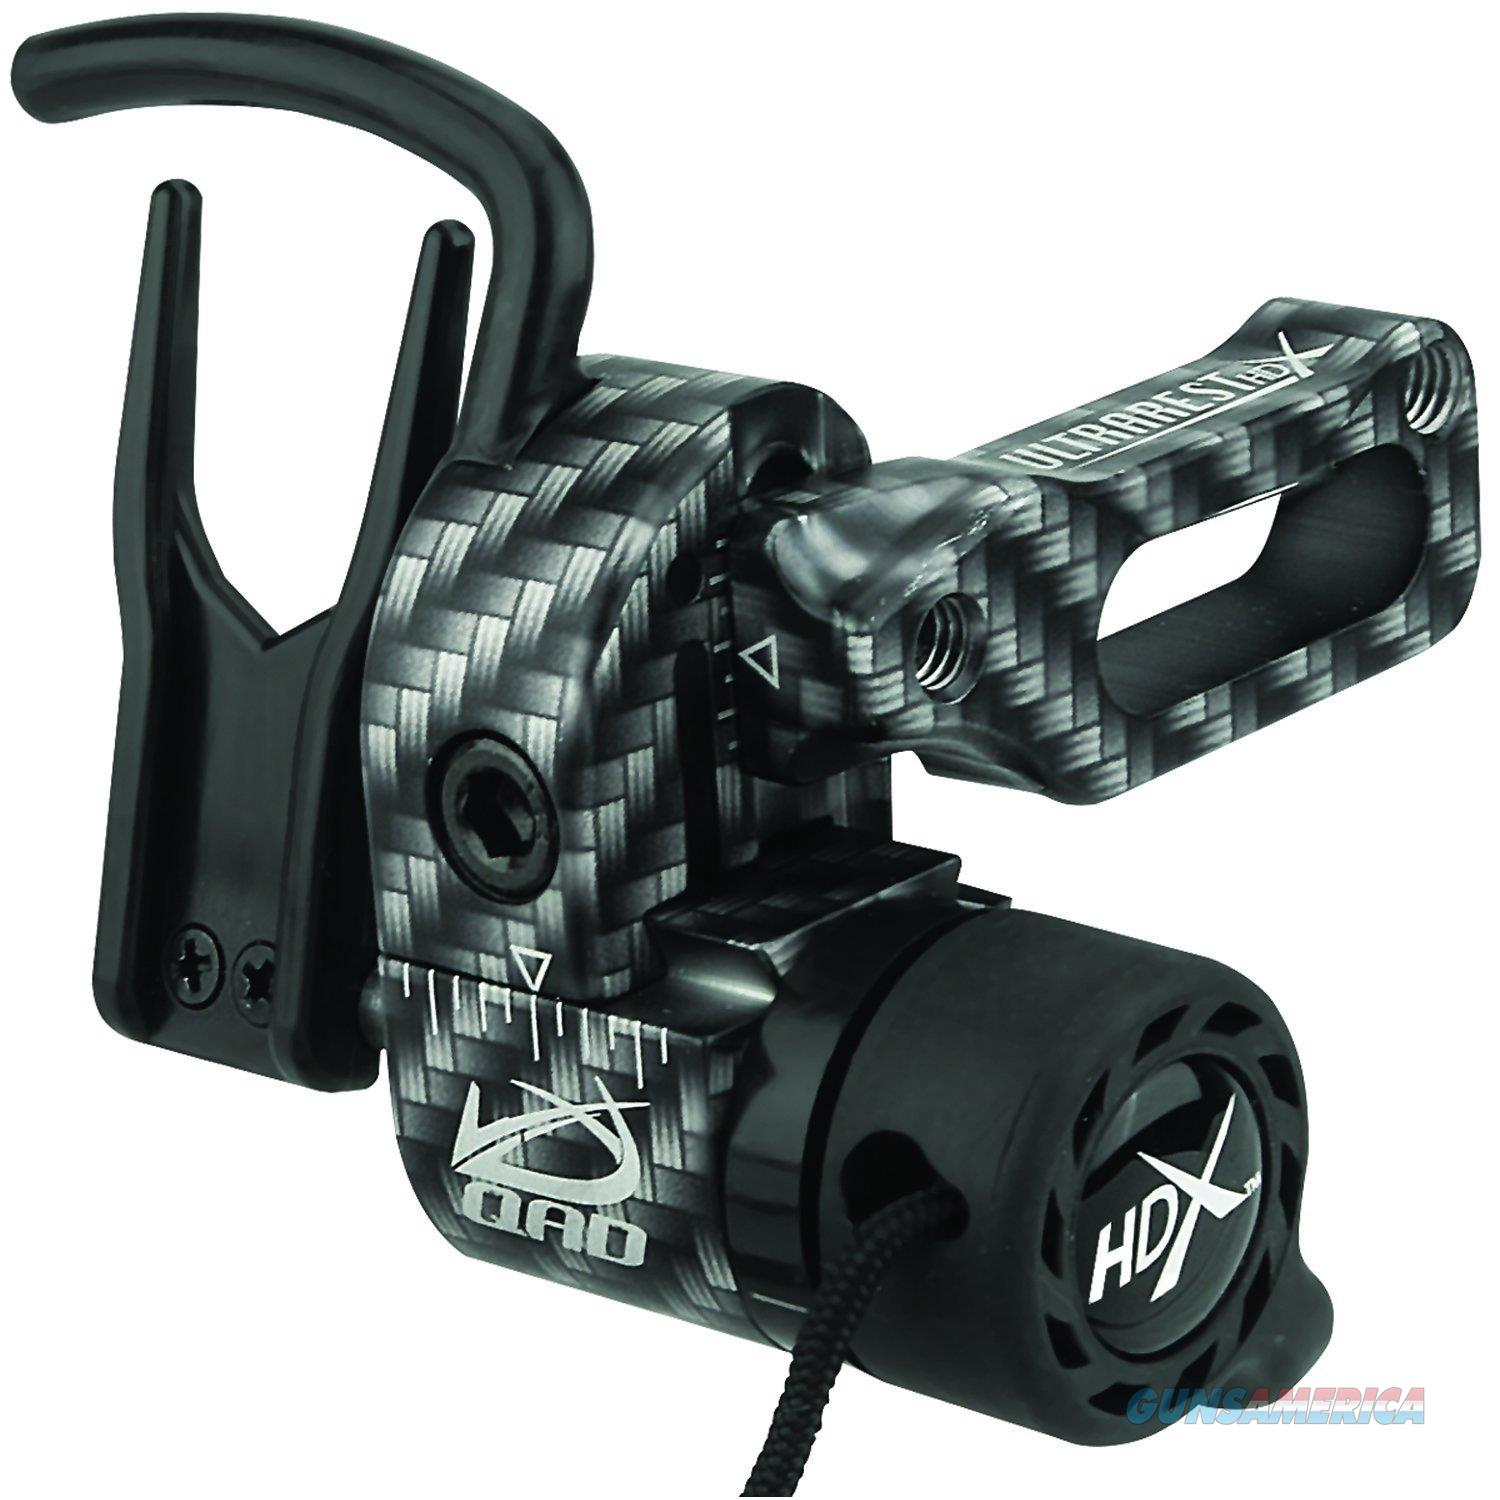 QAD Bow Ultra Rest HDX Tactical Left Hand NEW  Non-Guns > Fishing/Spearfishing